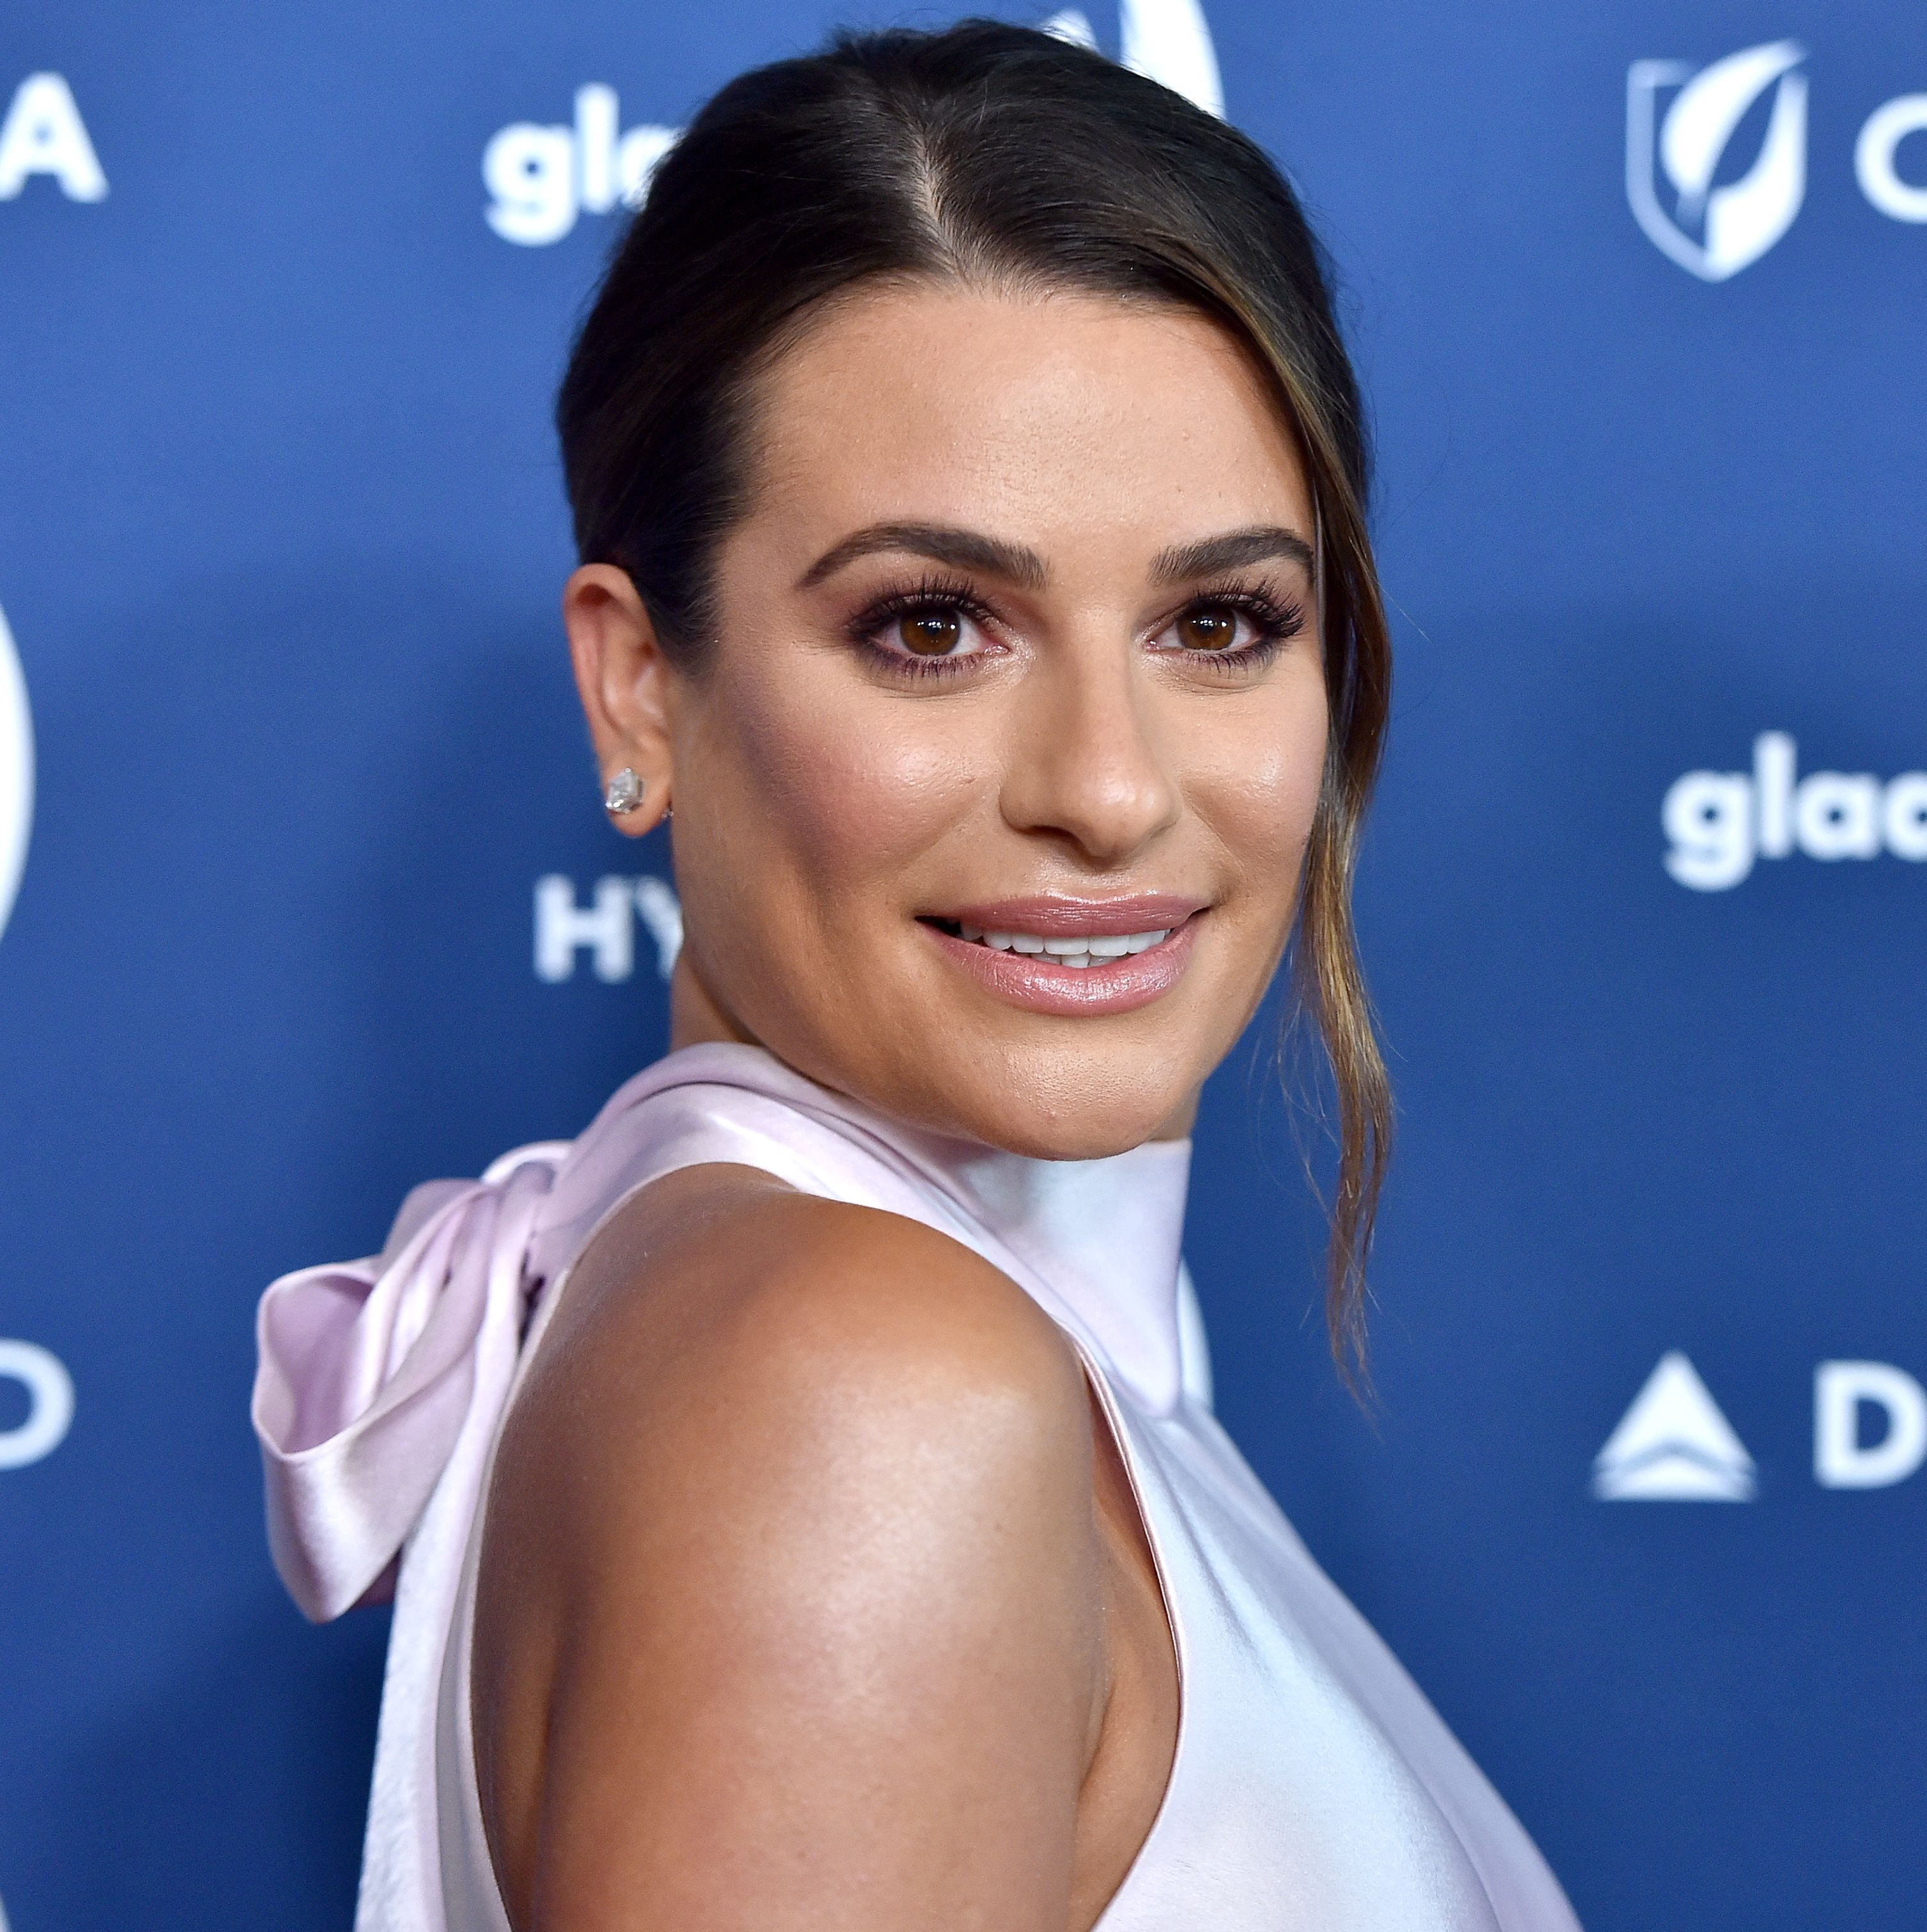 Lea Michele's Secret to Glowing Skin Is a $4 Face Mask From Amazon